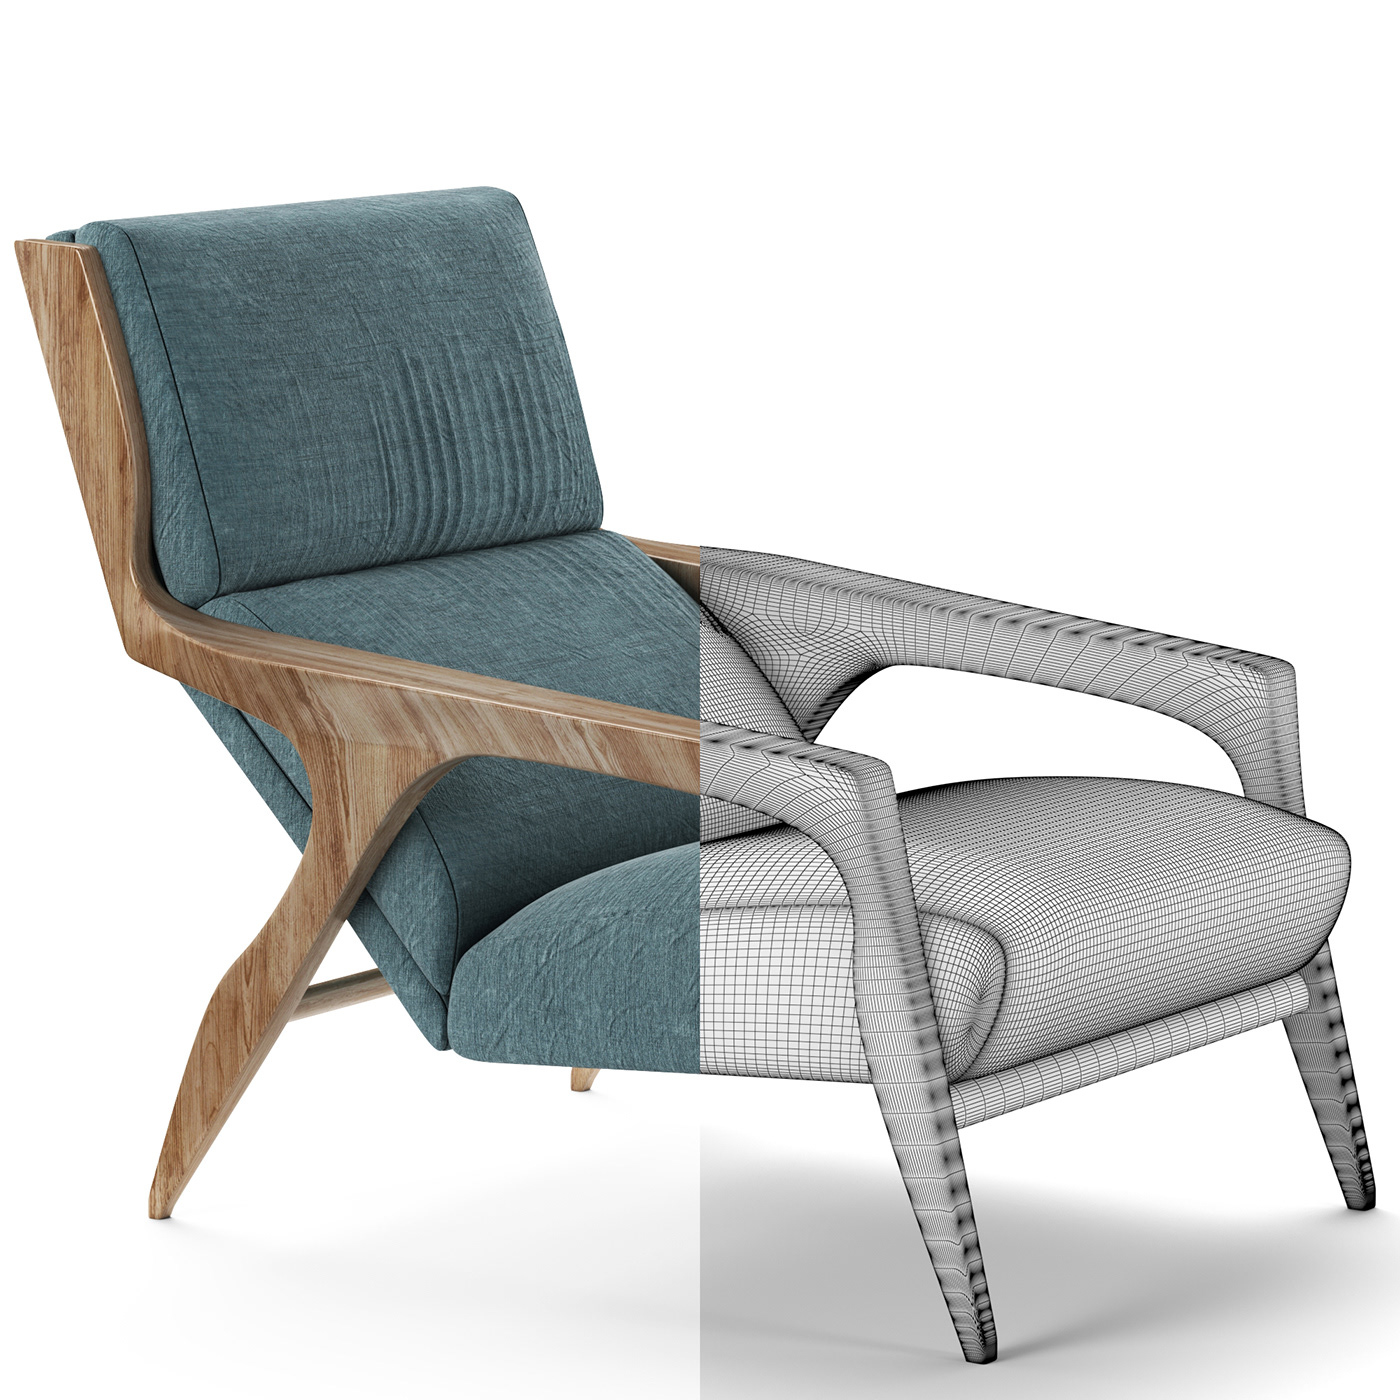 3dsmax,chair,design,furnituredesign,Interior,modelling,photorealistic,productdesign,Render,vray